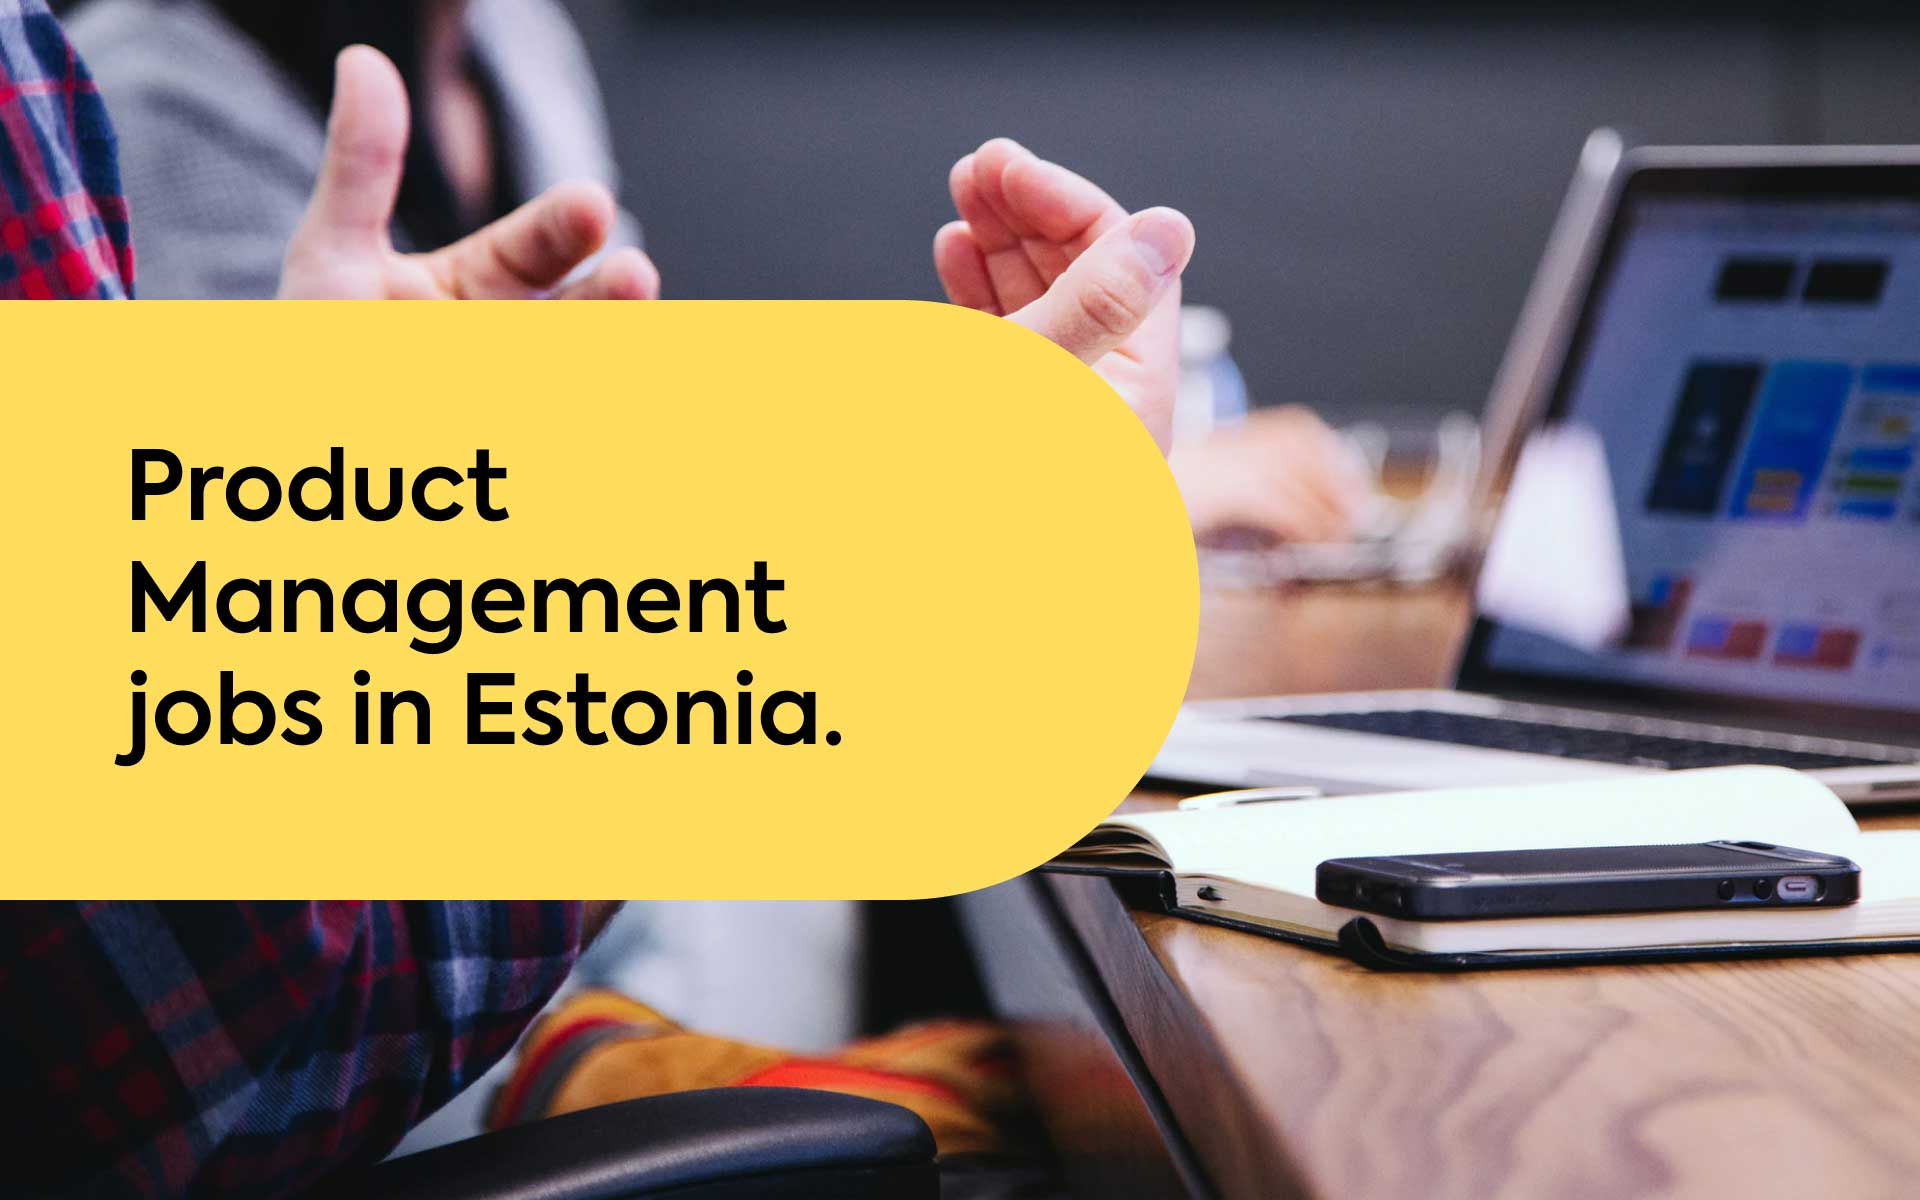 Product Management jobs in Estonia